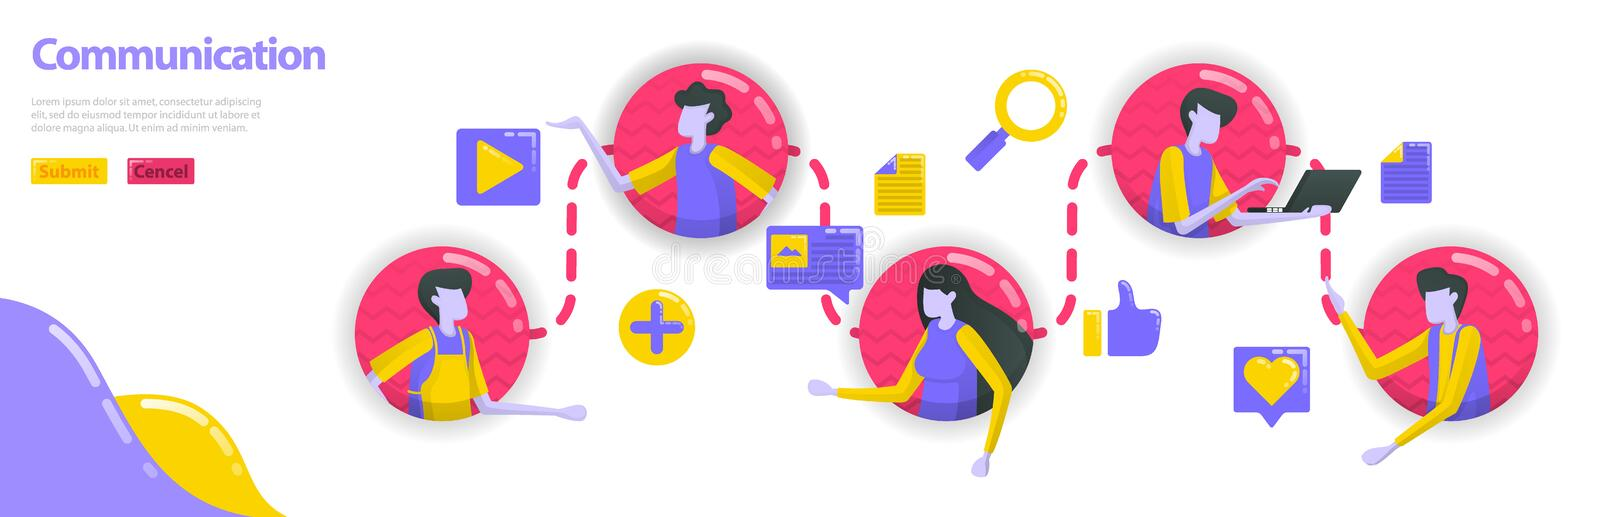 Illustration of communication. people are connected to each other in communication and community line. social media connects. People. Flat vector concept for vector illustration